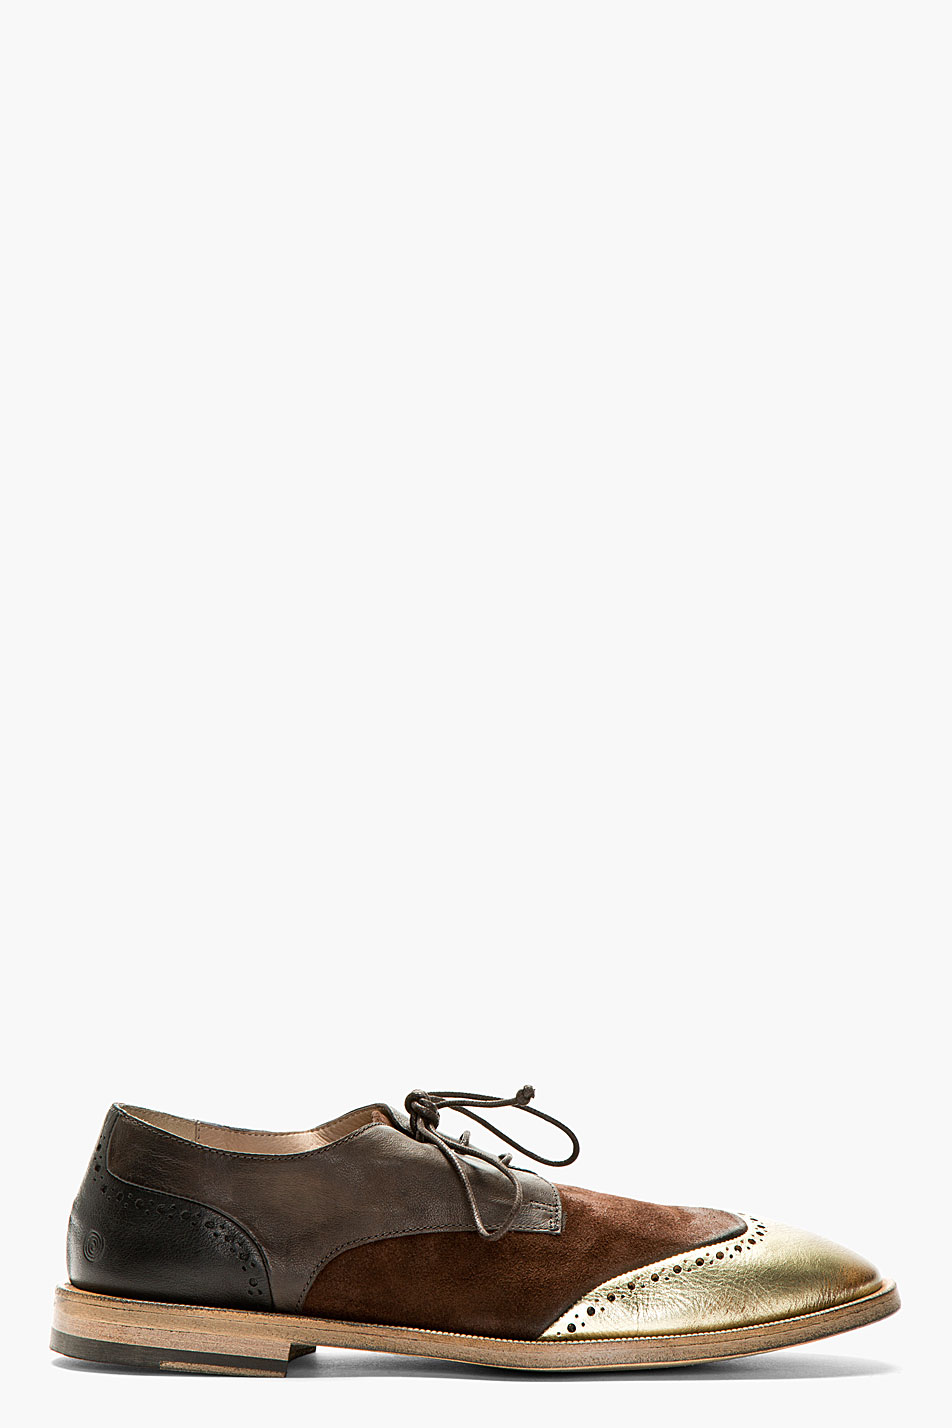 Marsll brown leather shortwing brogues